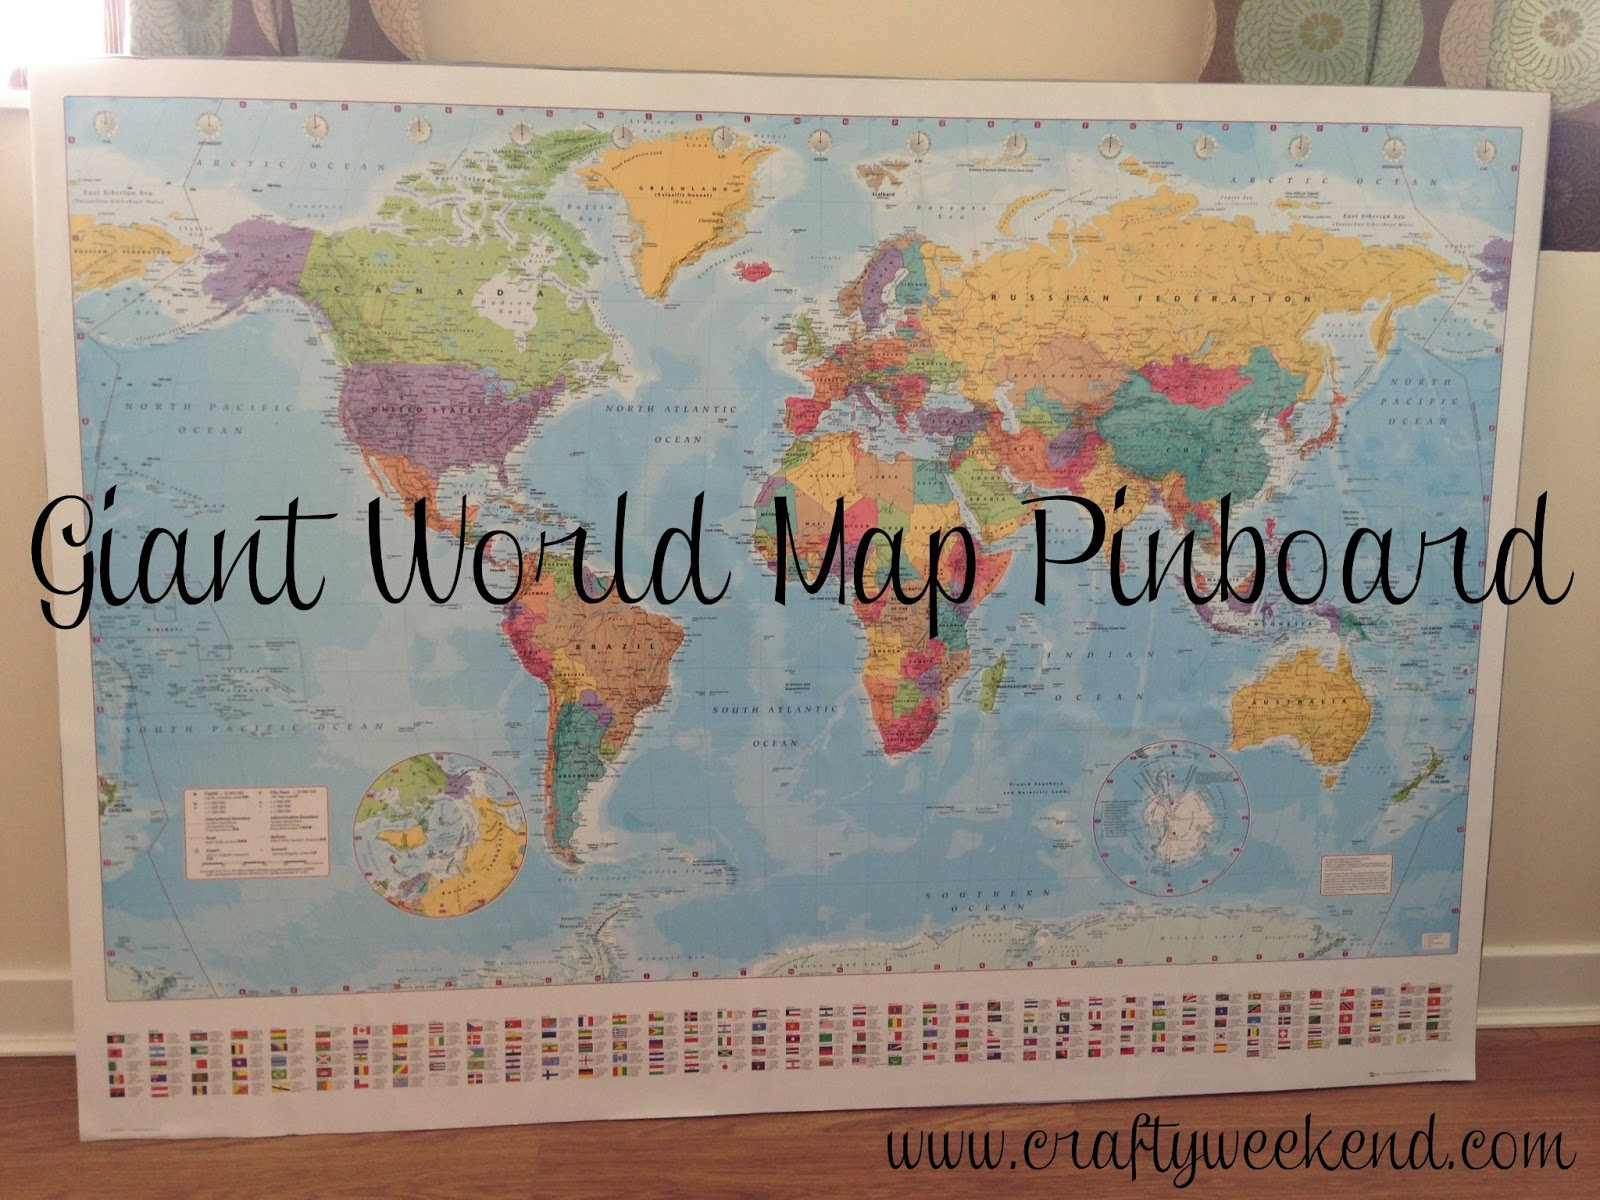 Giant world map pinboard crafty weekend craft projects for the world map pin board cork board instructions gumiabroncs Choice Image